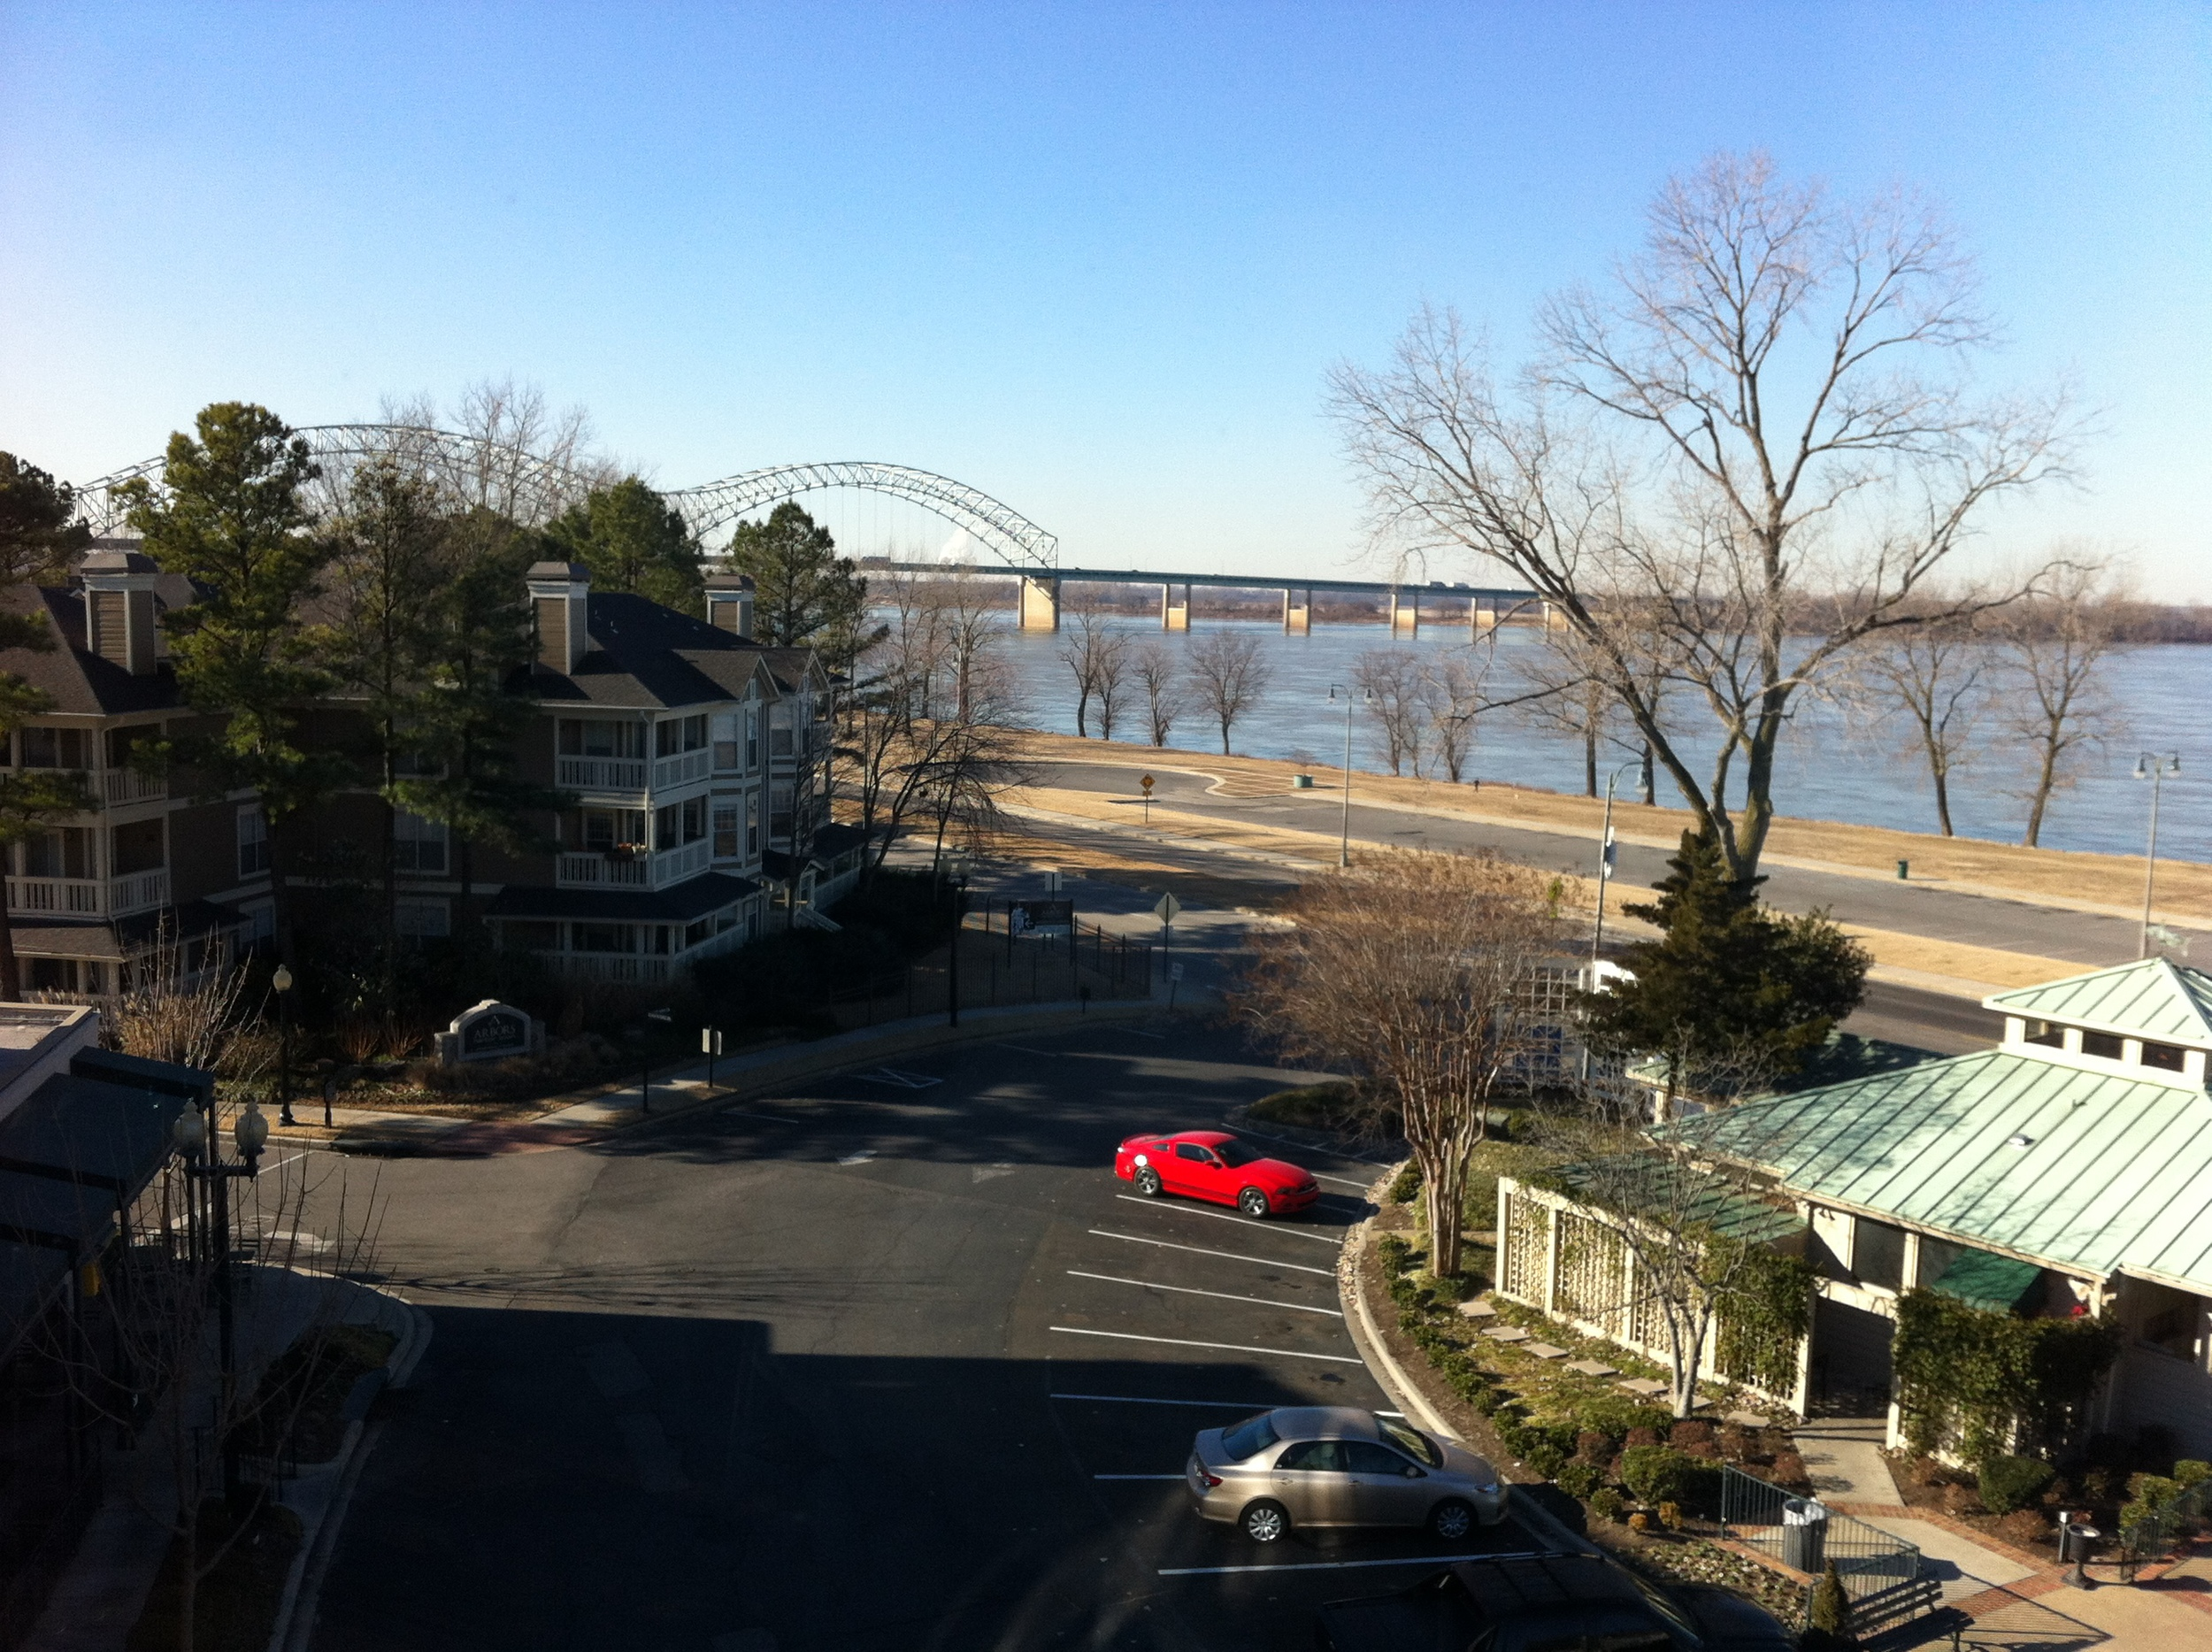 The view from our room of the mighty Mississippi and the bridge to West Memphis in Arkansas.